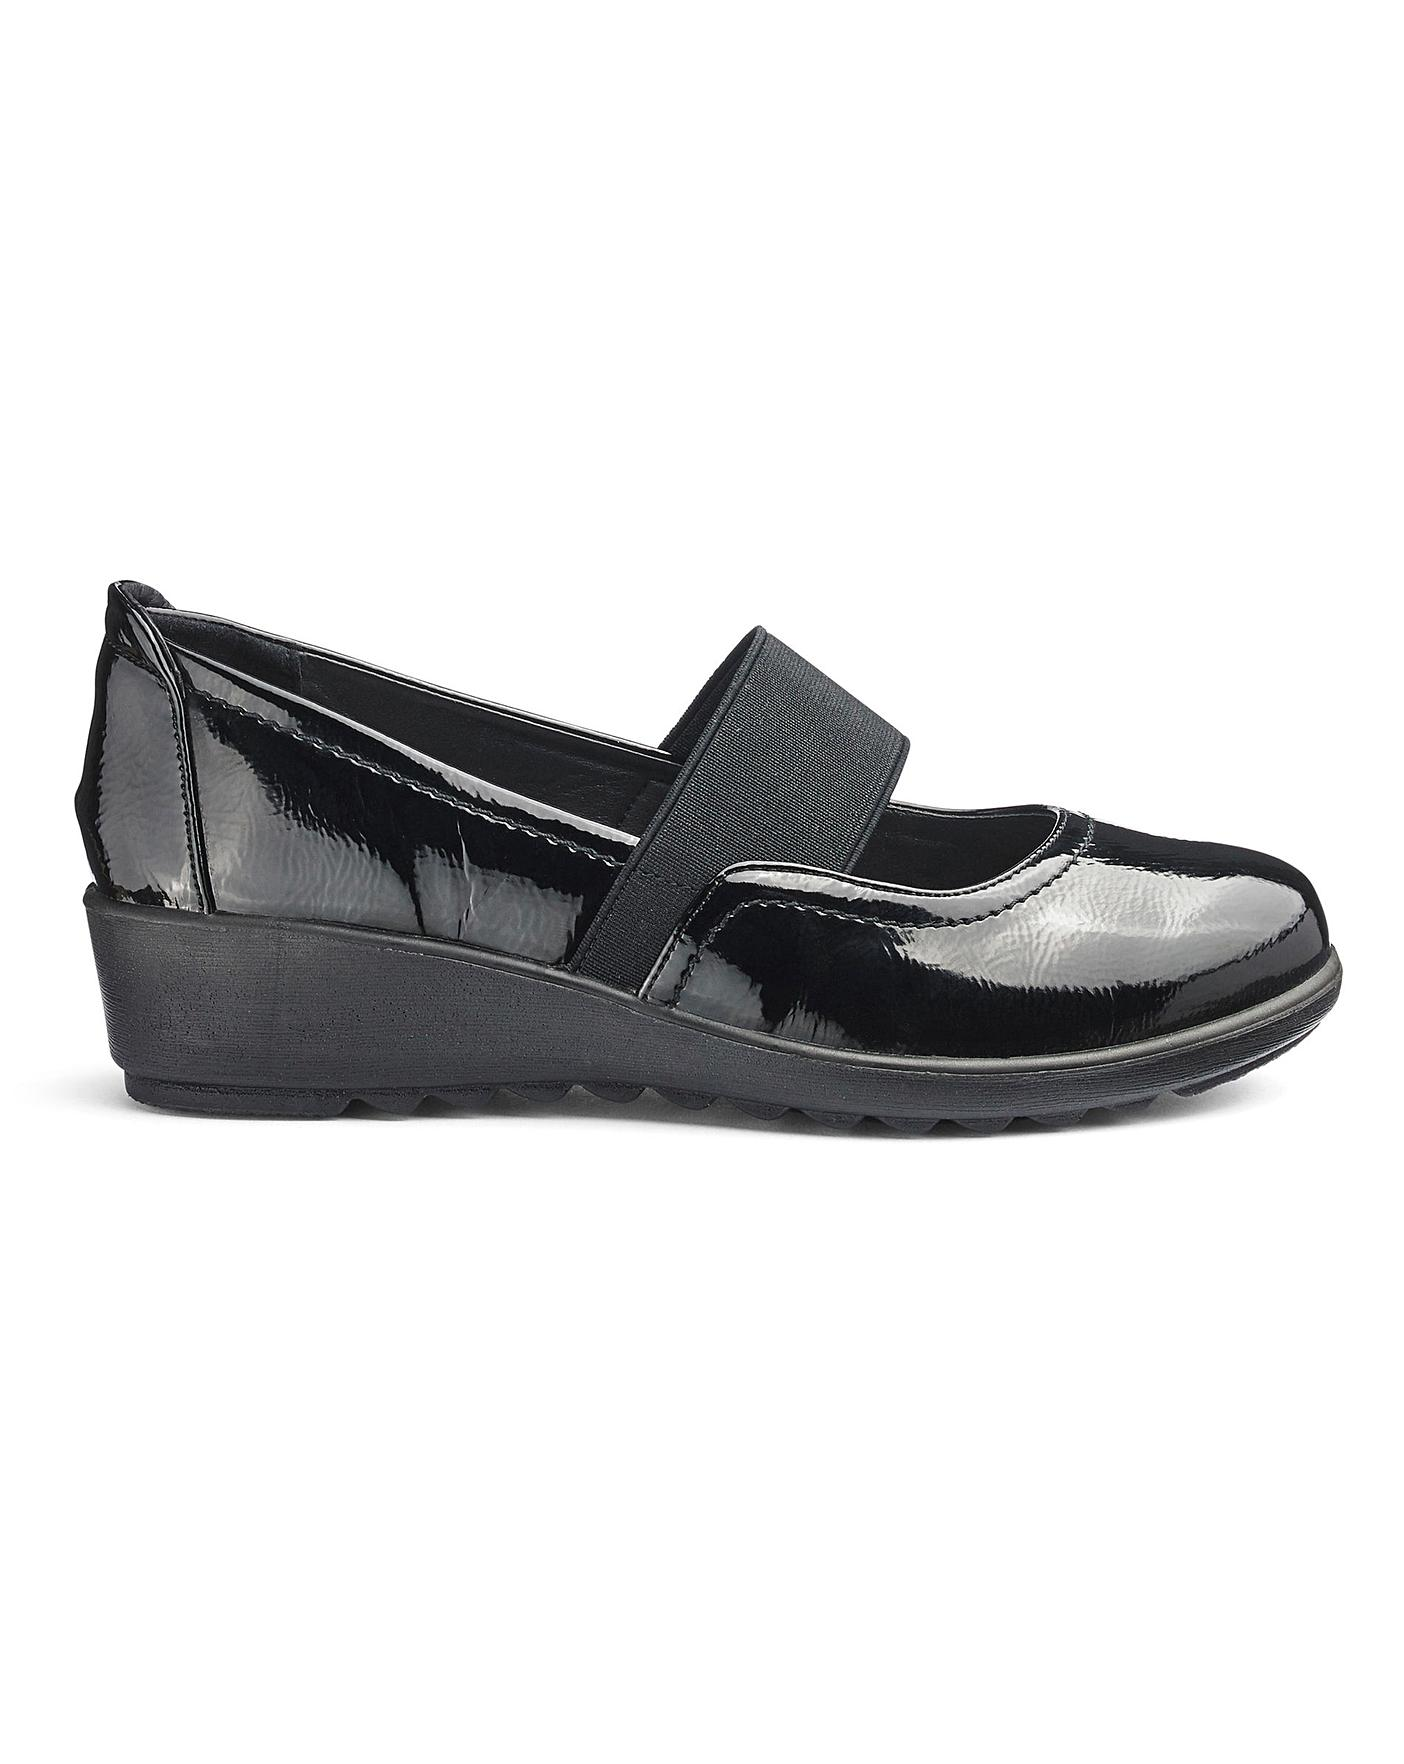 to buy to buy popular brand Cushion Walk Bar Shoes EEE Fit | J D Williams